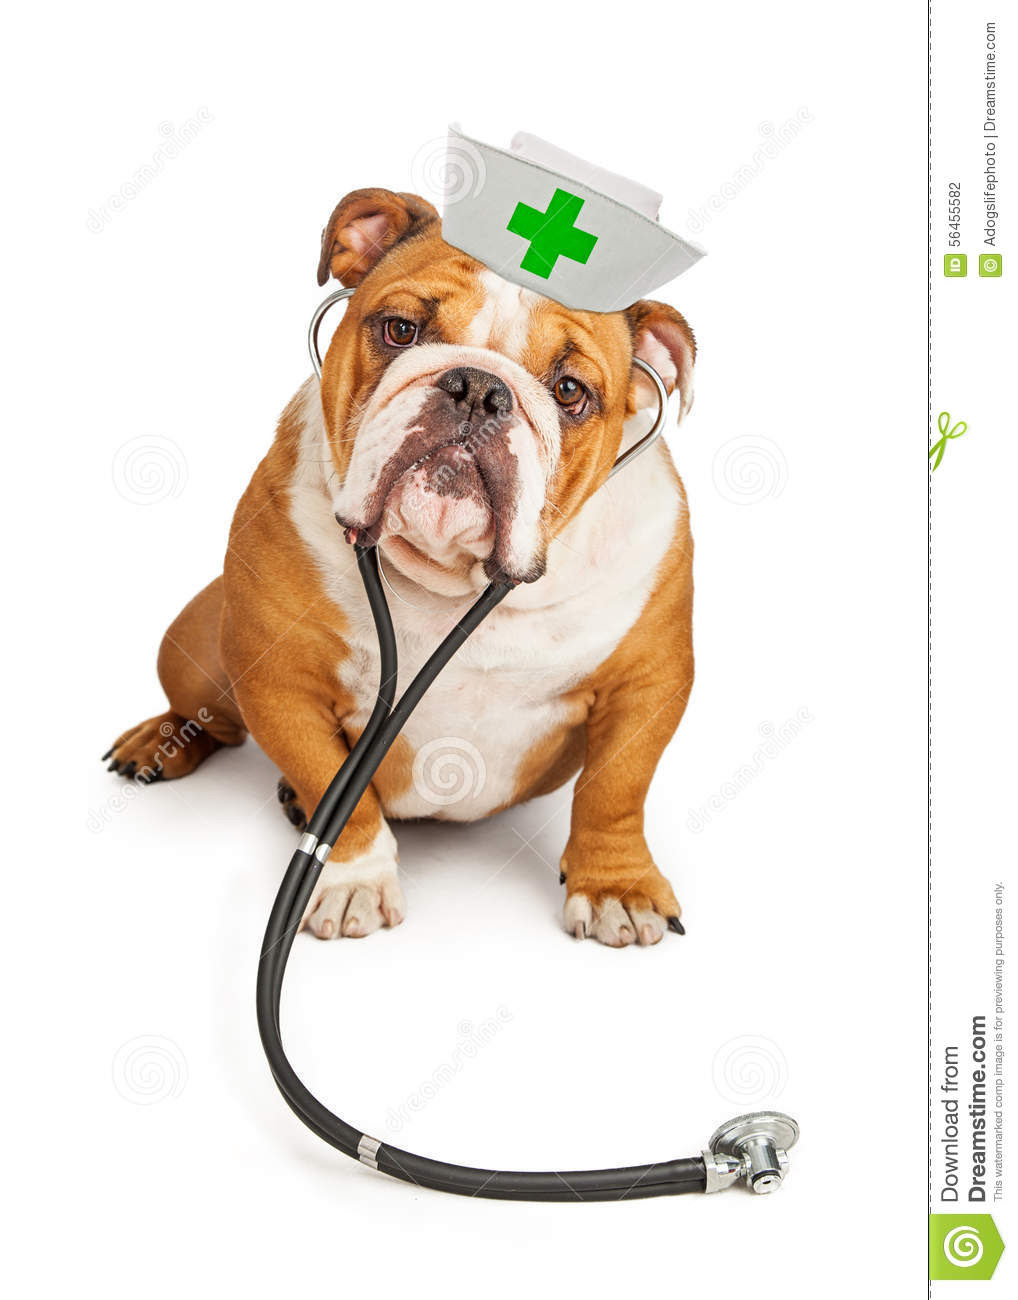 A bulldog dressed up as a nurse, complete with stethoscope and outfit.